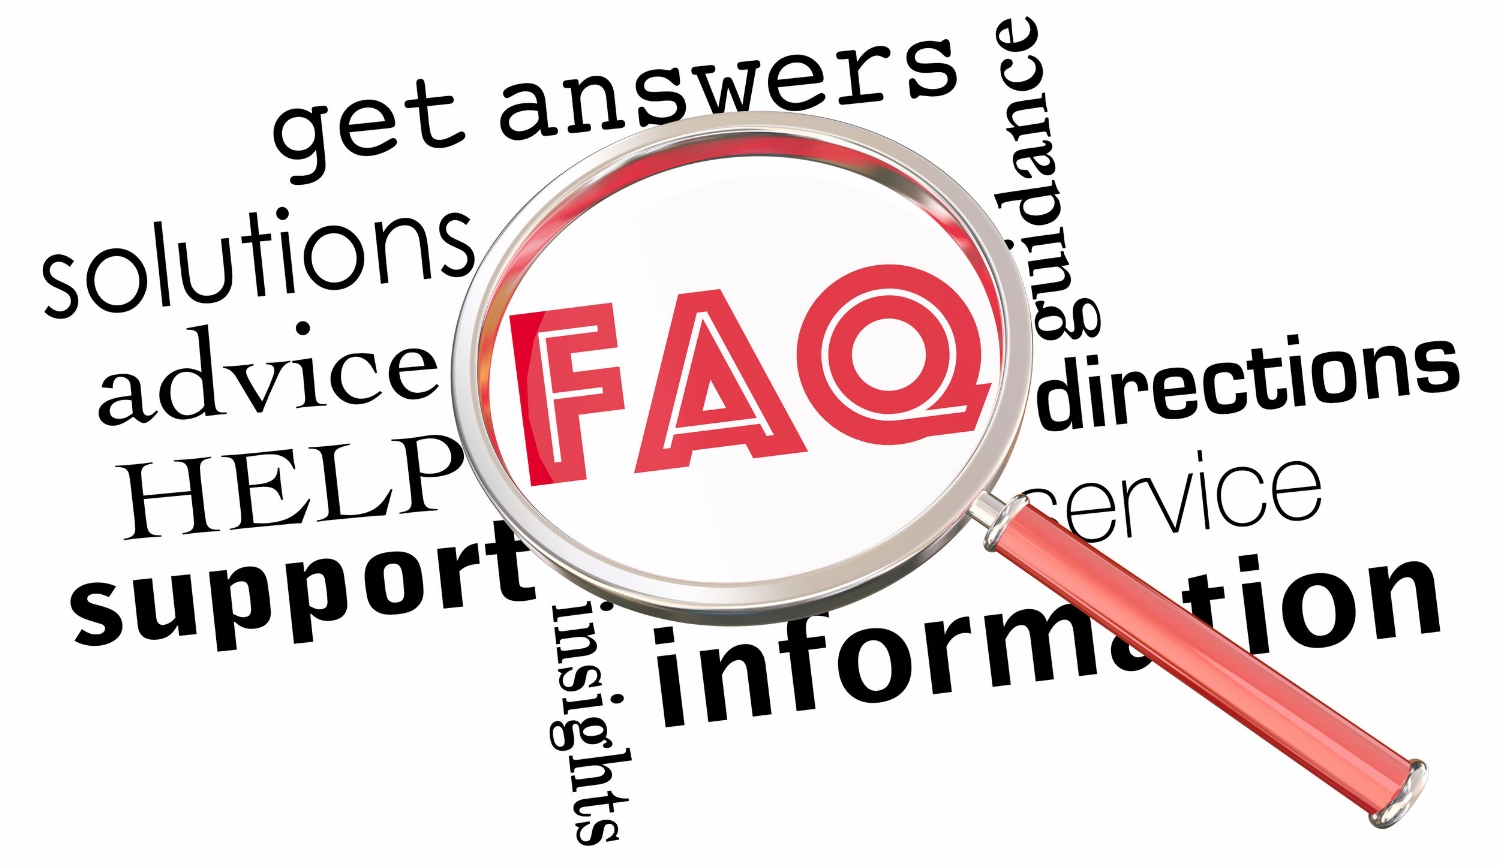 Questions and Answers - A sampling of frequently asked questions about our complete range of services.